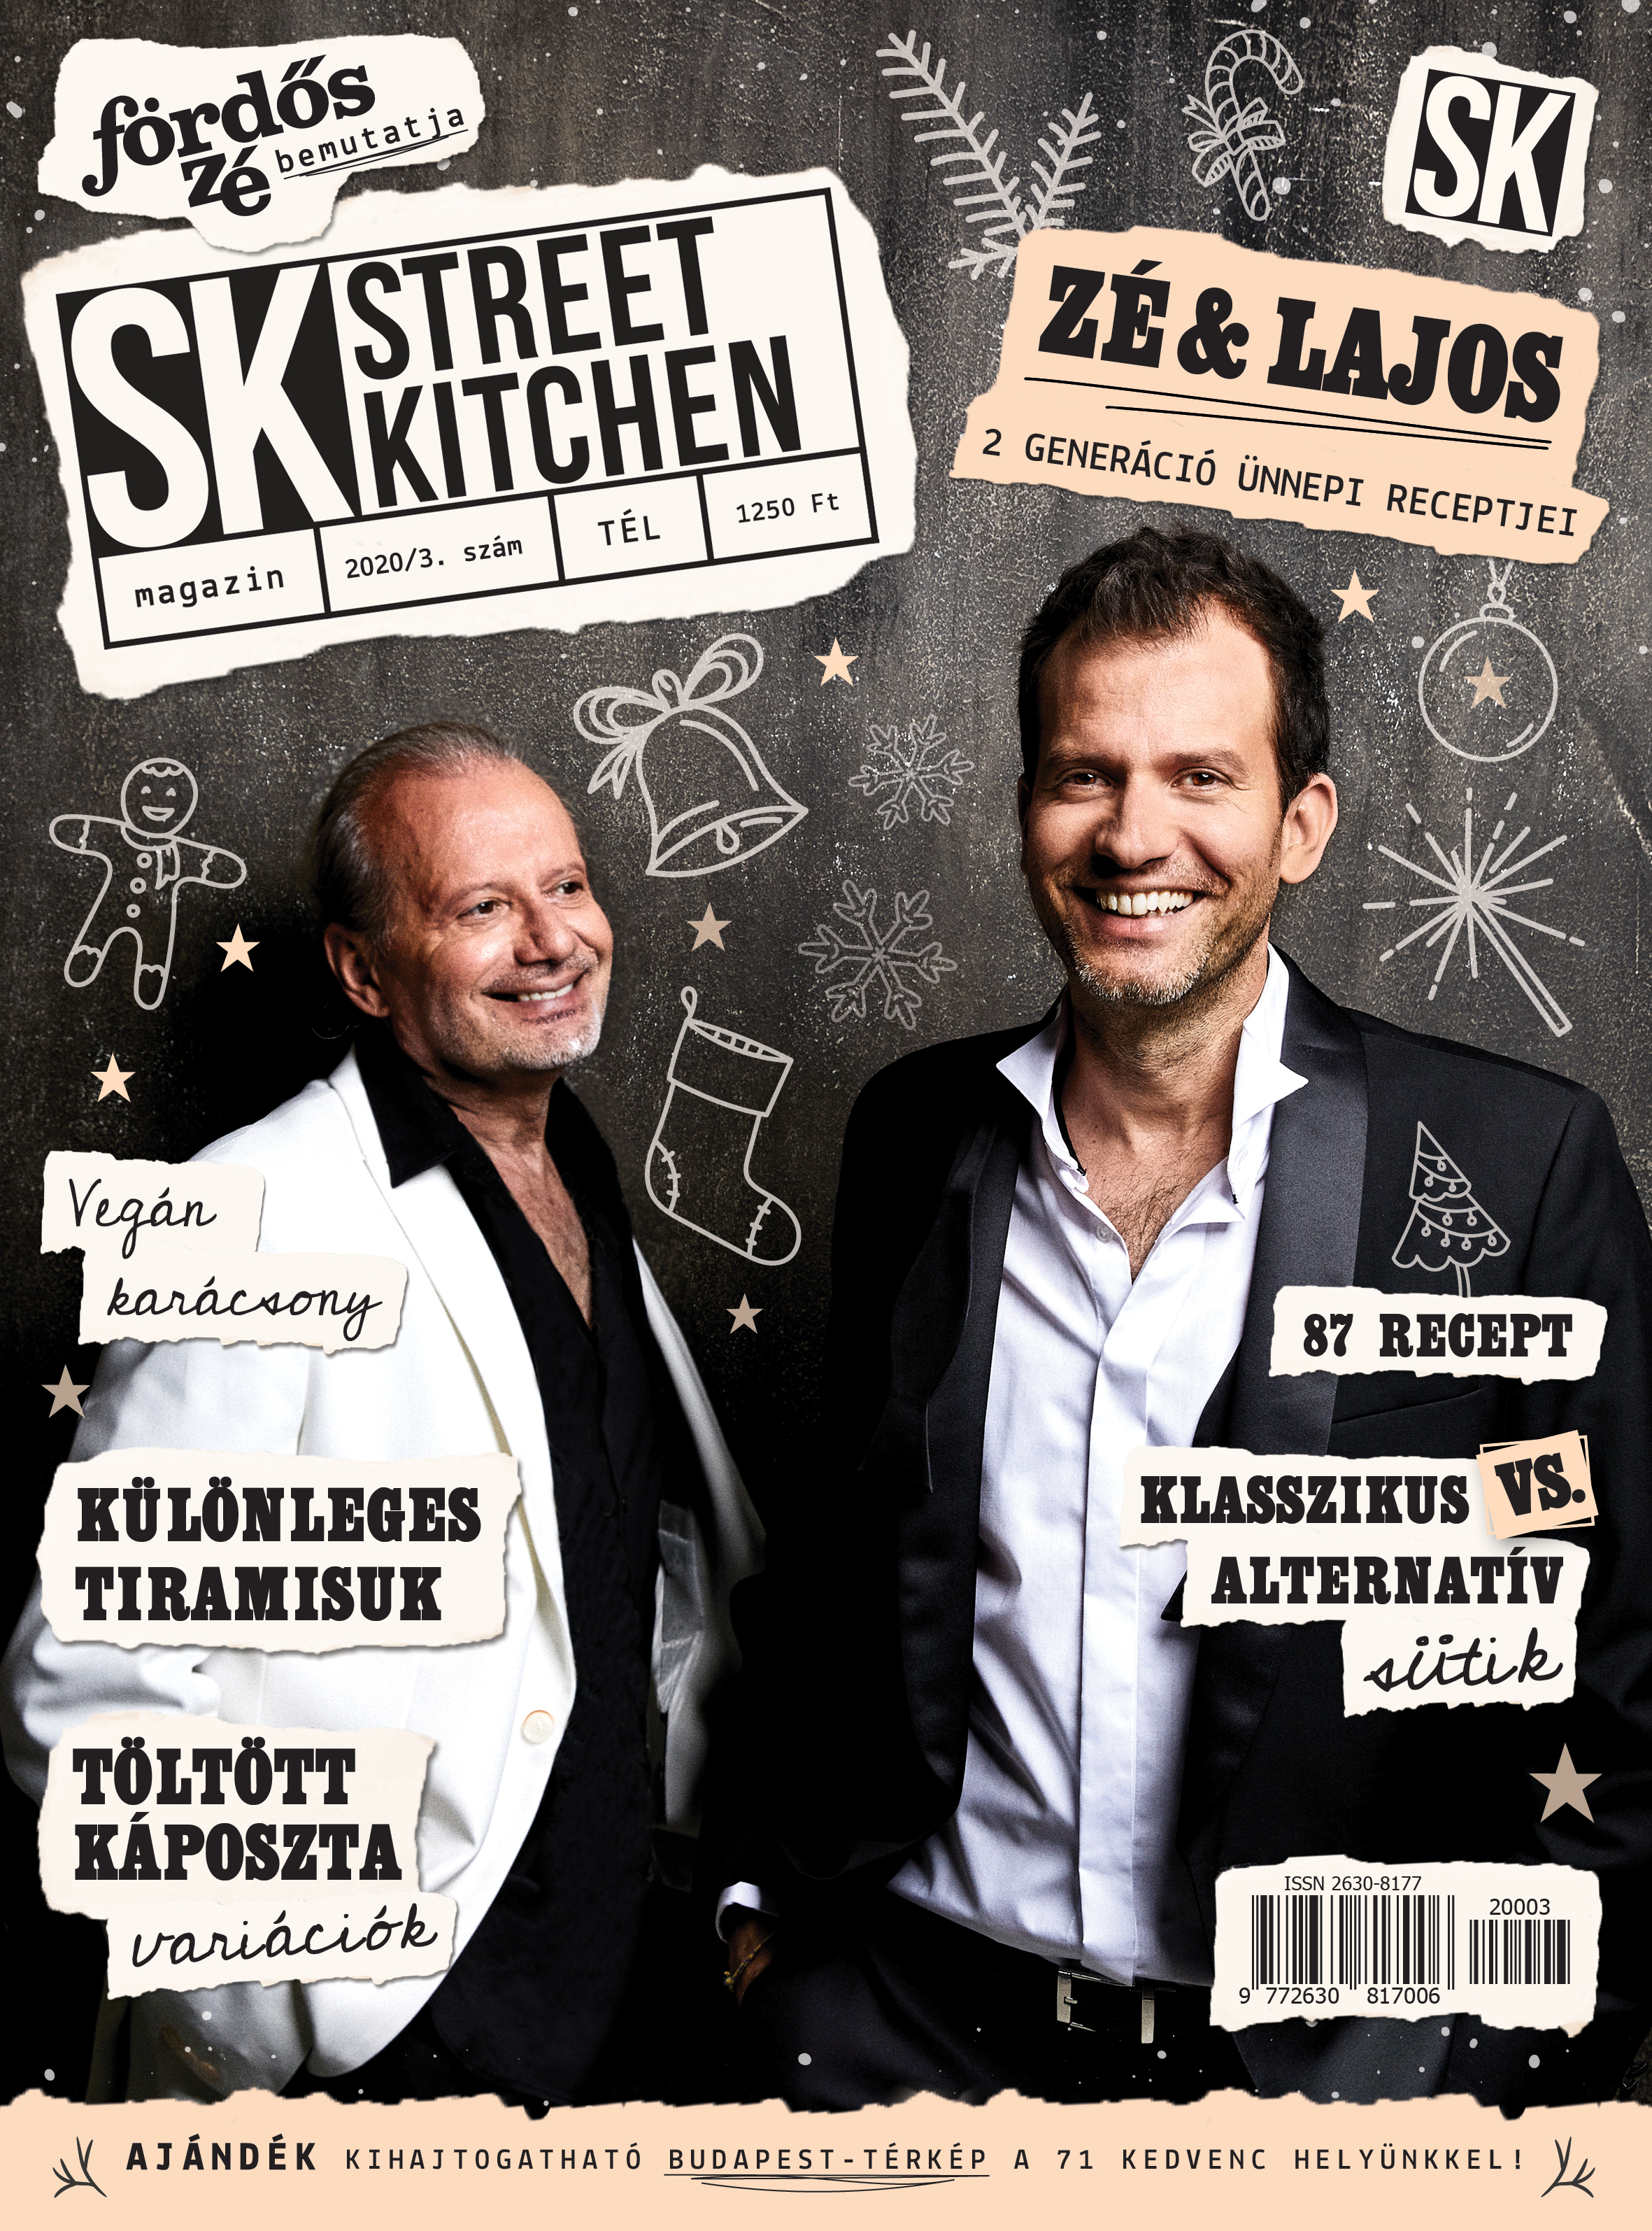 Street Kitchen magazin TÉL 2020/3